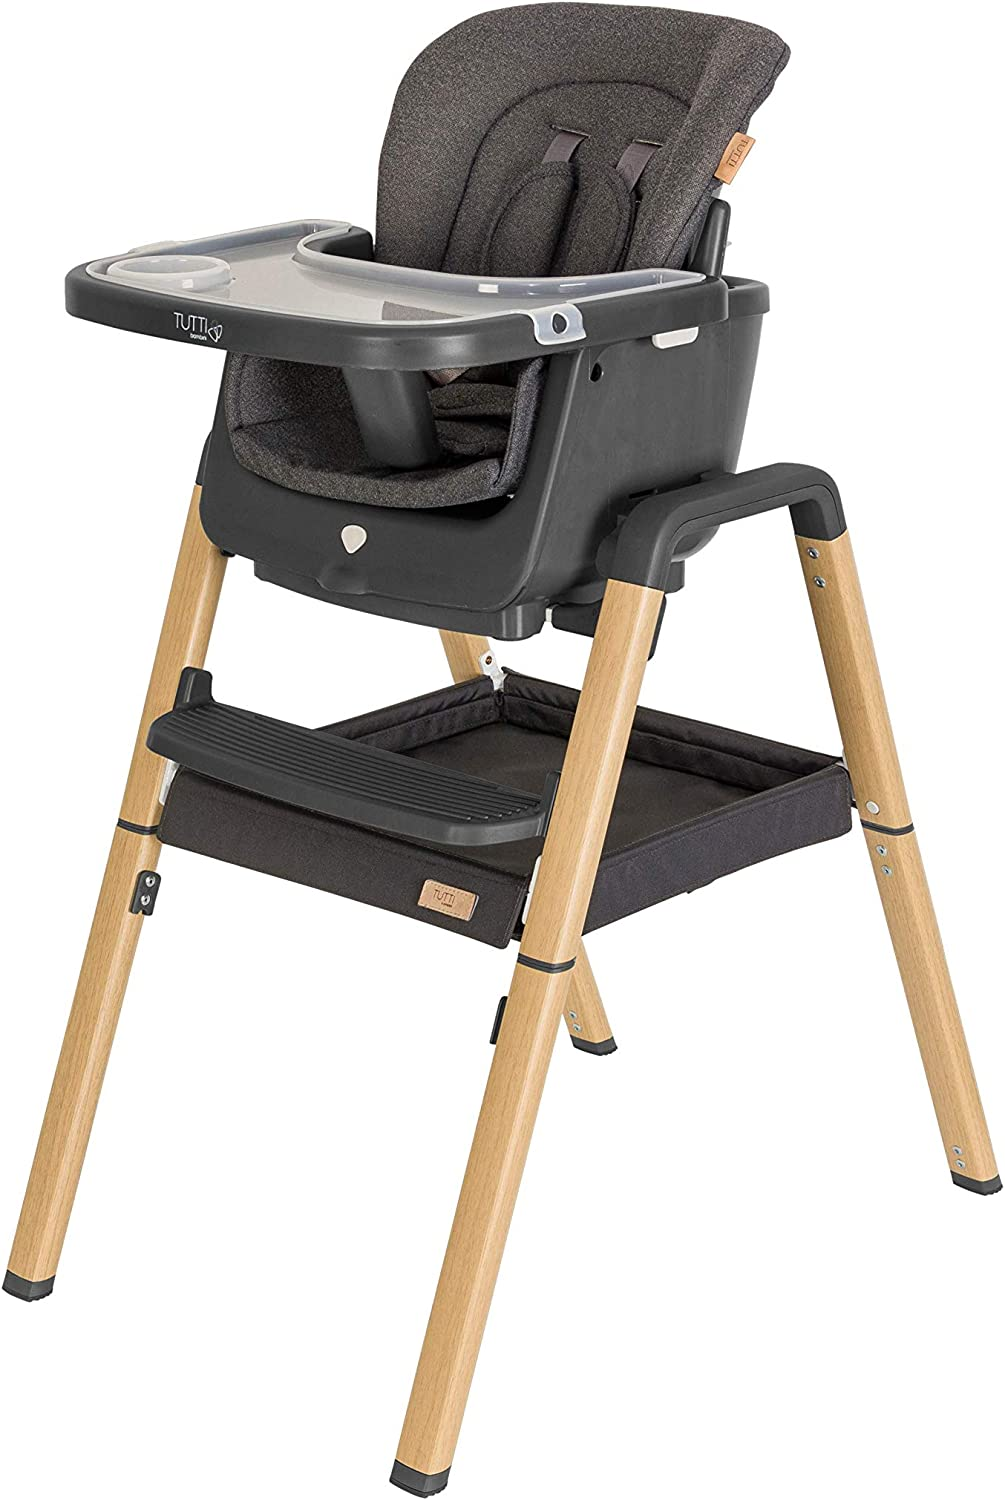 Tutti Bambini Birth to 12 Years Quick fold Nova Evolutionary Highchair Black 7 Adjustable Modes from New Born Highchair to Toddler Seat Travel Case